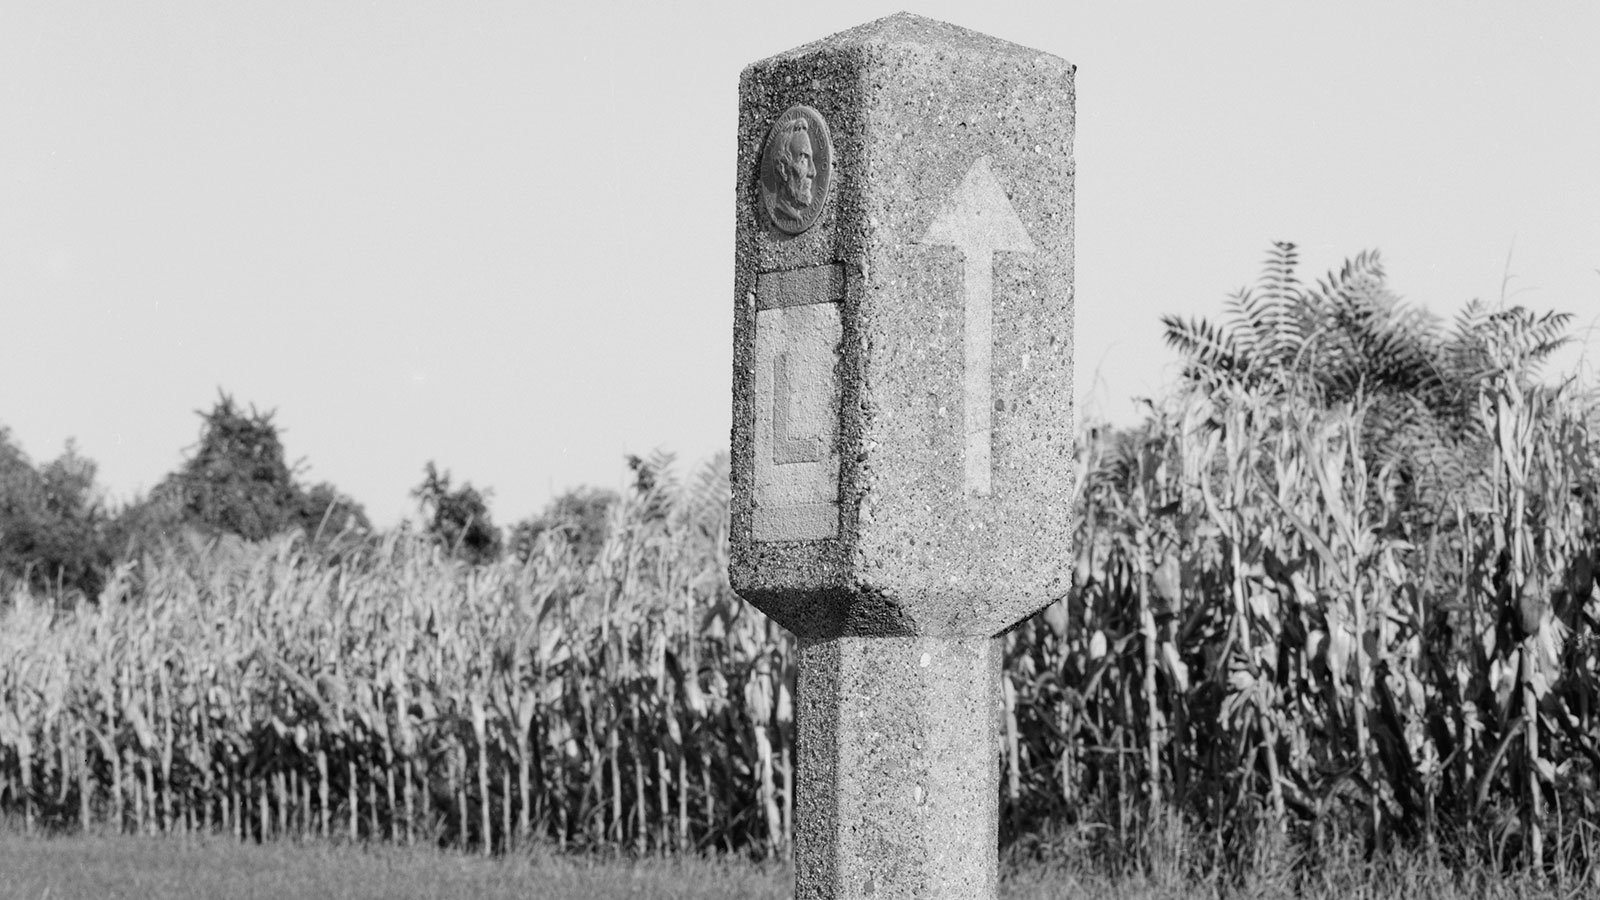 Lincoln Highway marker in Fallsington, Pennsylvania